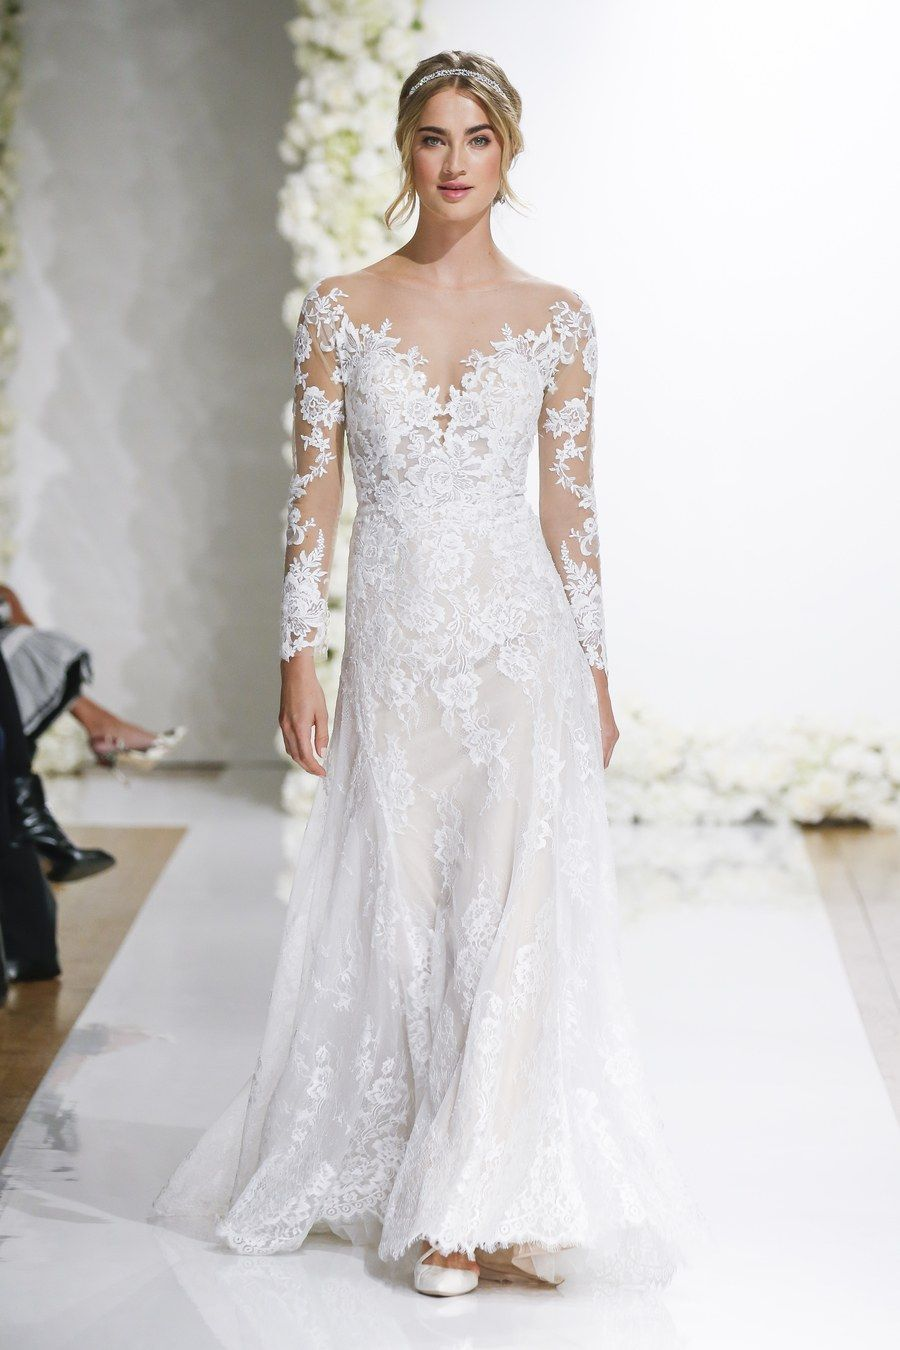 Lace wedding dress with illusion neckline and sleeves Morilee by